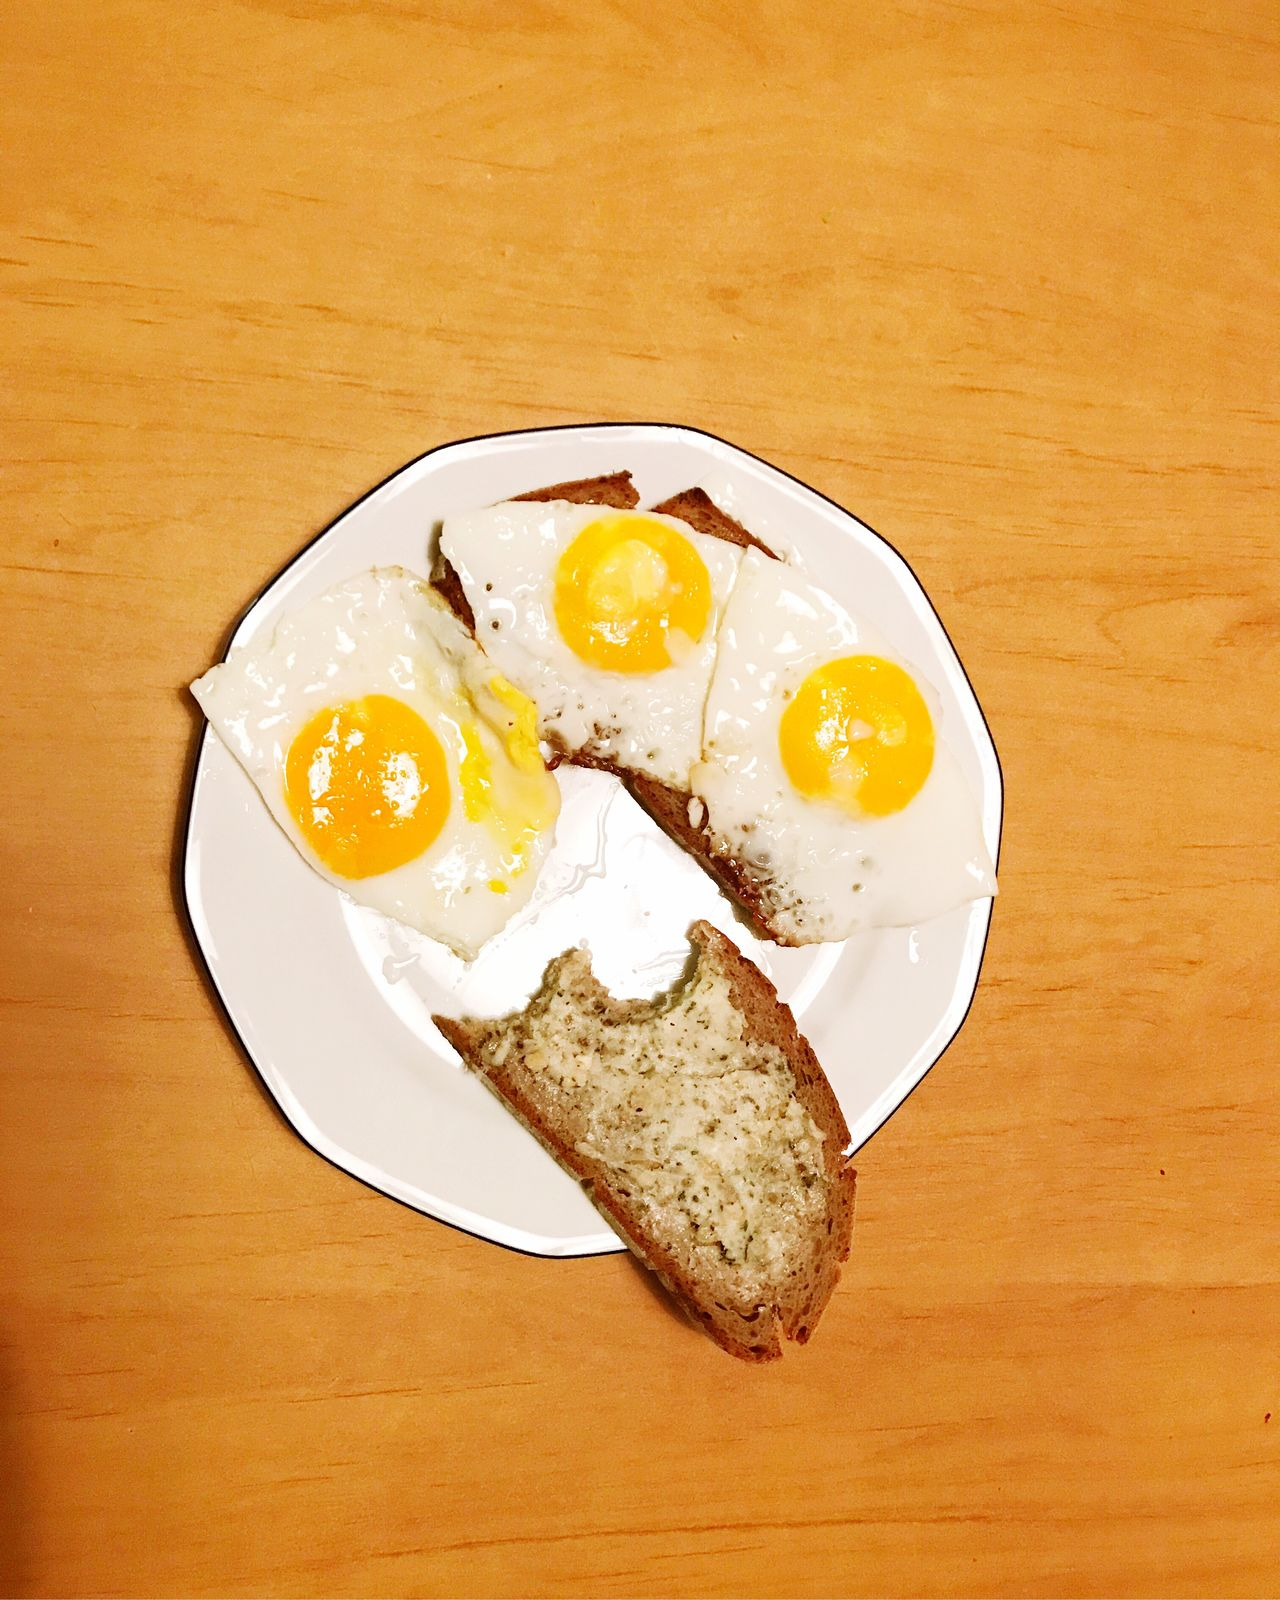 Ei Ei Ei Egg Food Freshness Food And Drink Plate Egg Yolk Ready-to-eat Breakfast Serving Size Yellow Egg White Meal Appetizer Indoors  High Angle View Indulgence Fried Egg No People Table Close-up Foodie Eier Spiegelei